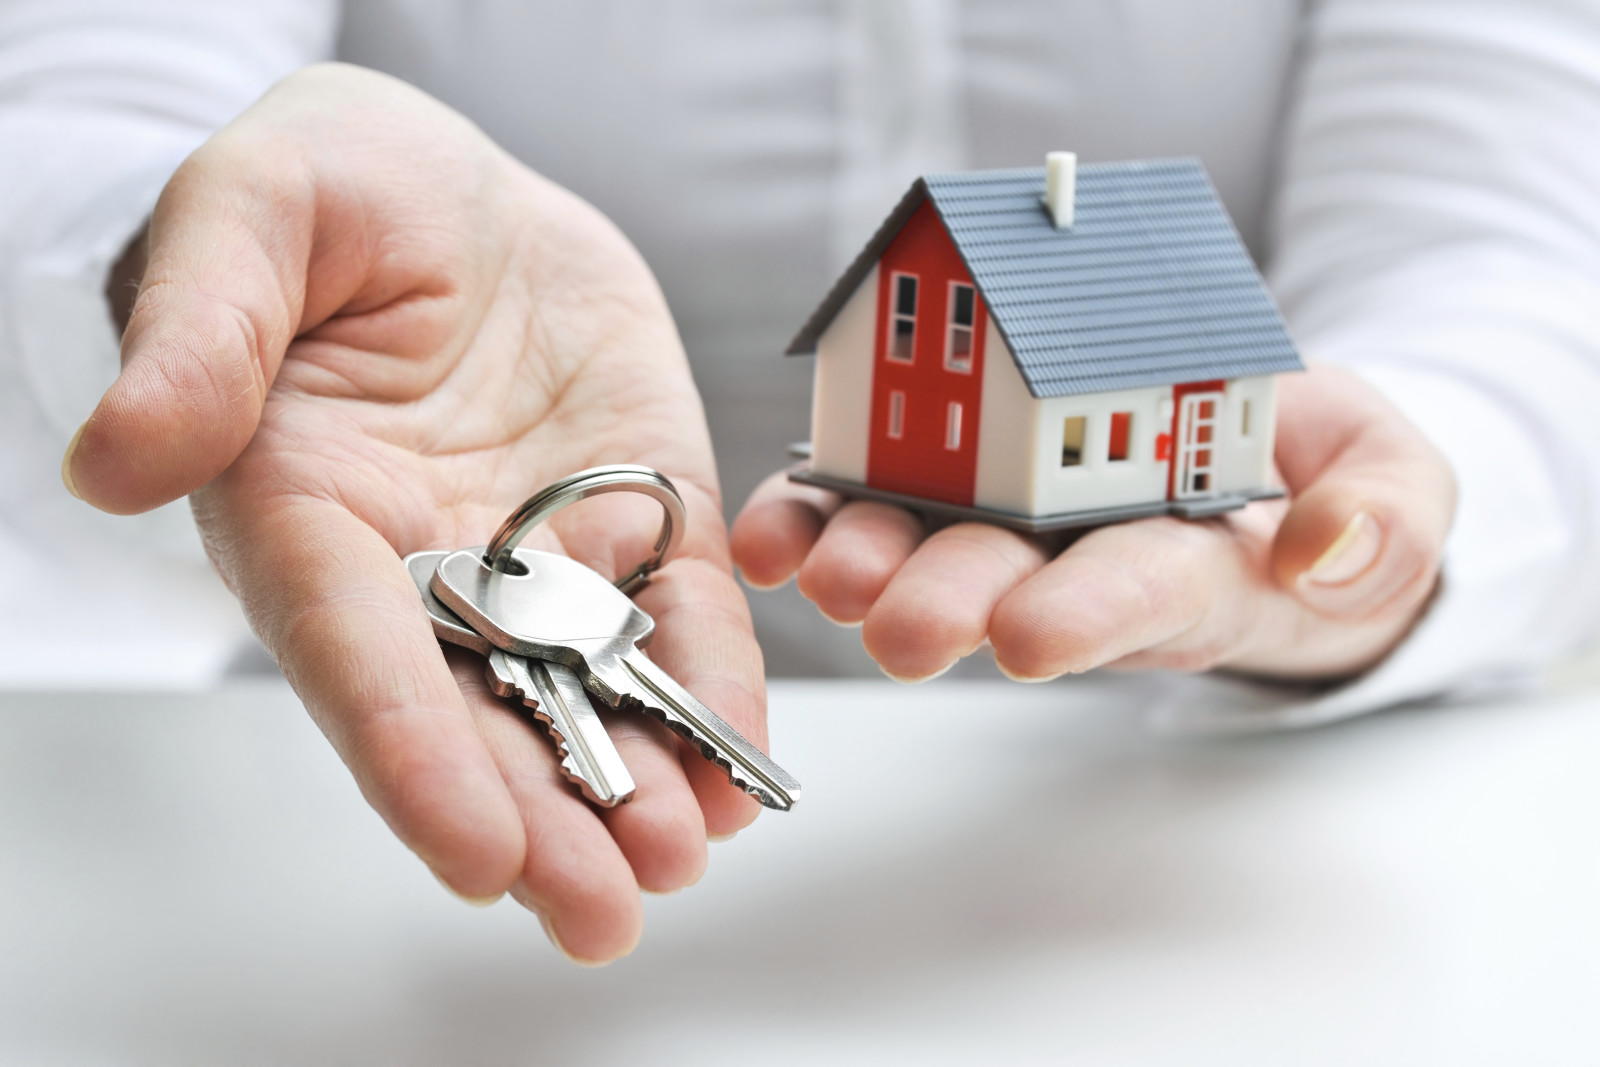 house_keys_hands-9d56cb.jpg